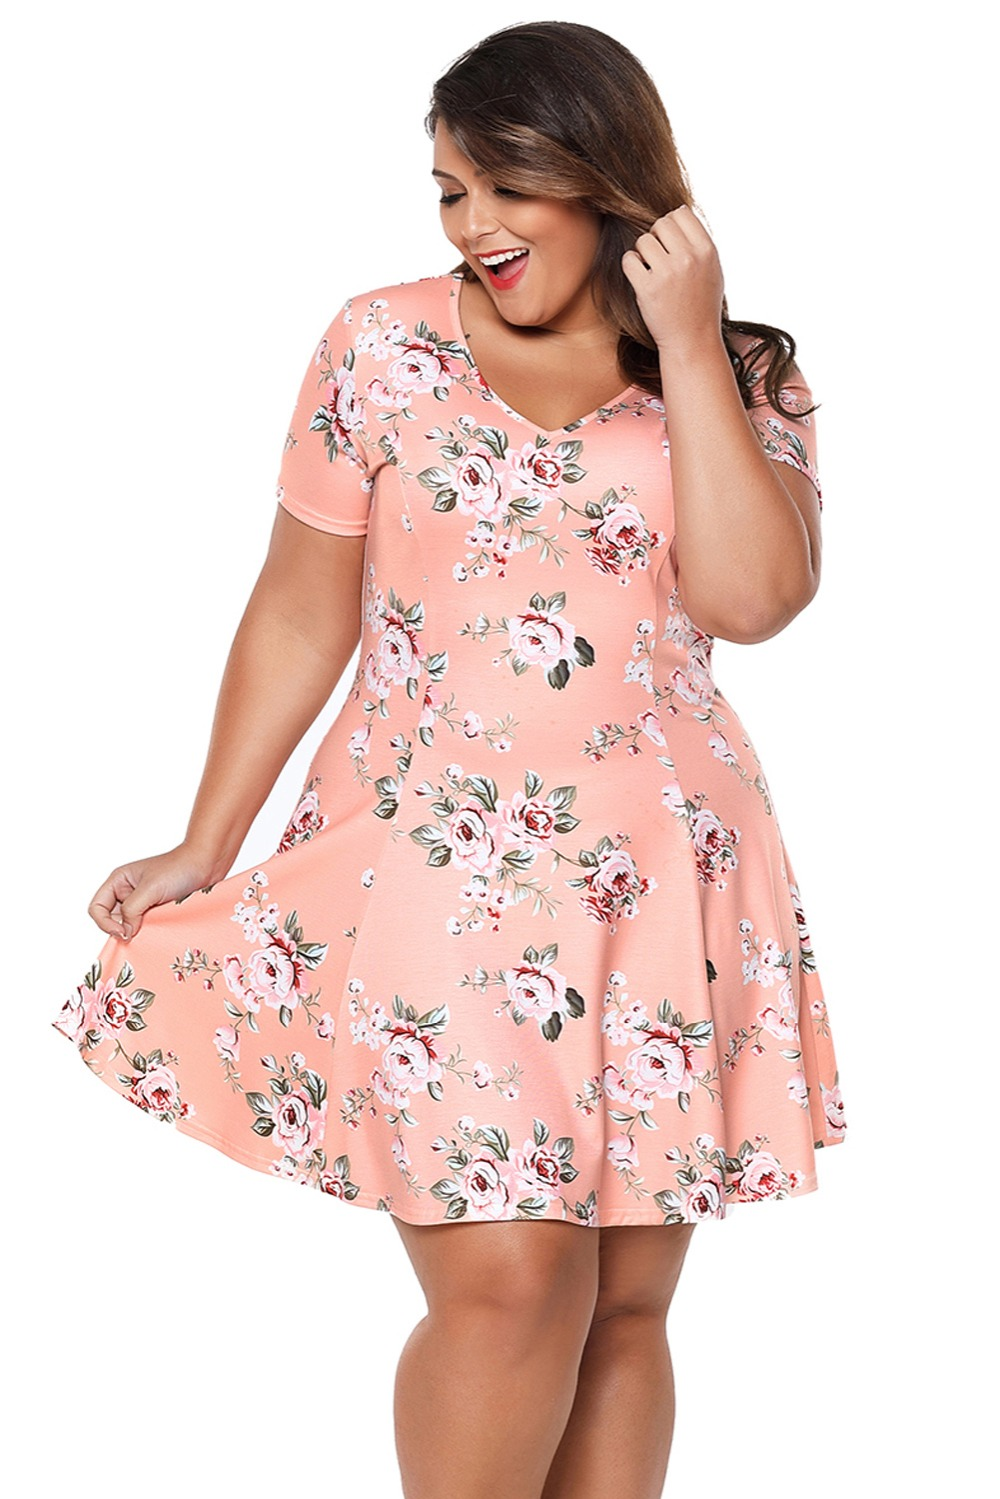 82f59a29e6494 SYLC220280-7 2018 Plus Size Summer Dresses Evening Party Beach Casual V-Neck  Short Sleeve Cute Women Print Coral Floral Mini A-Line Dress Dress Image